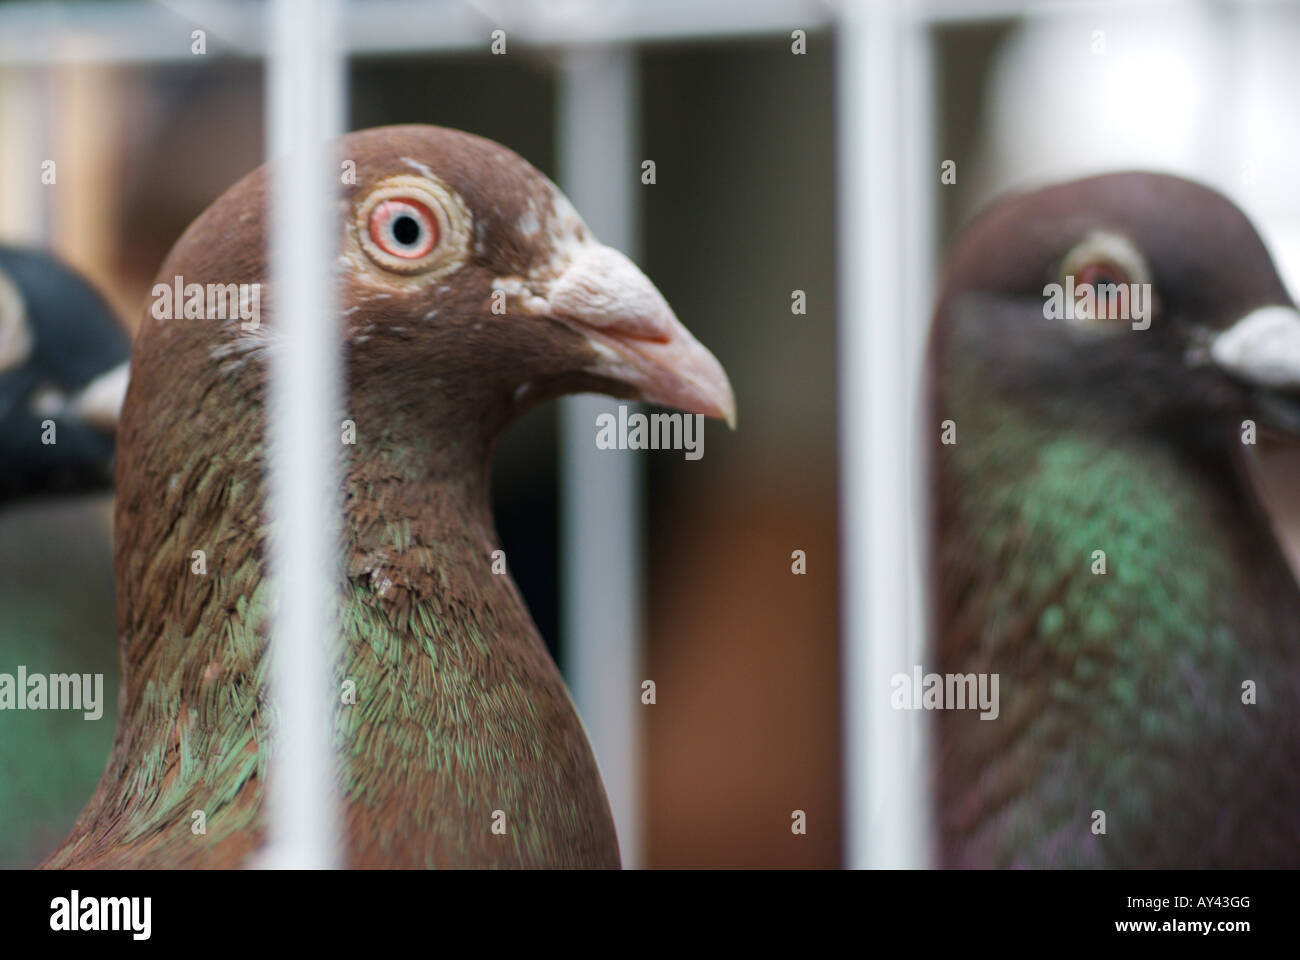 The heads of two caged racing pigeons with red eyes for sale